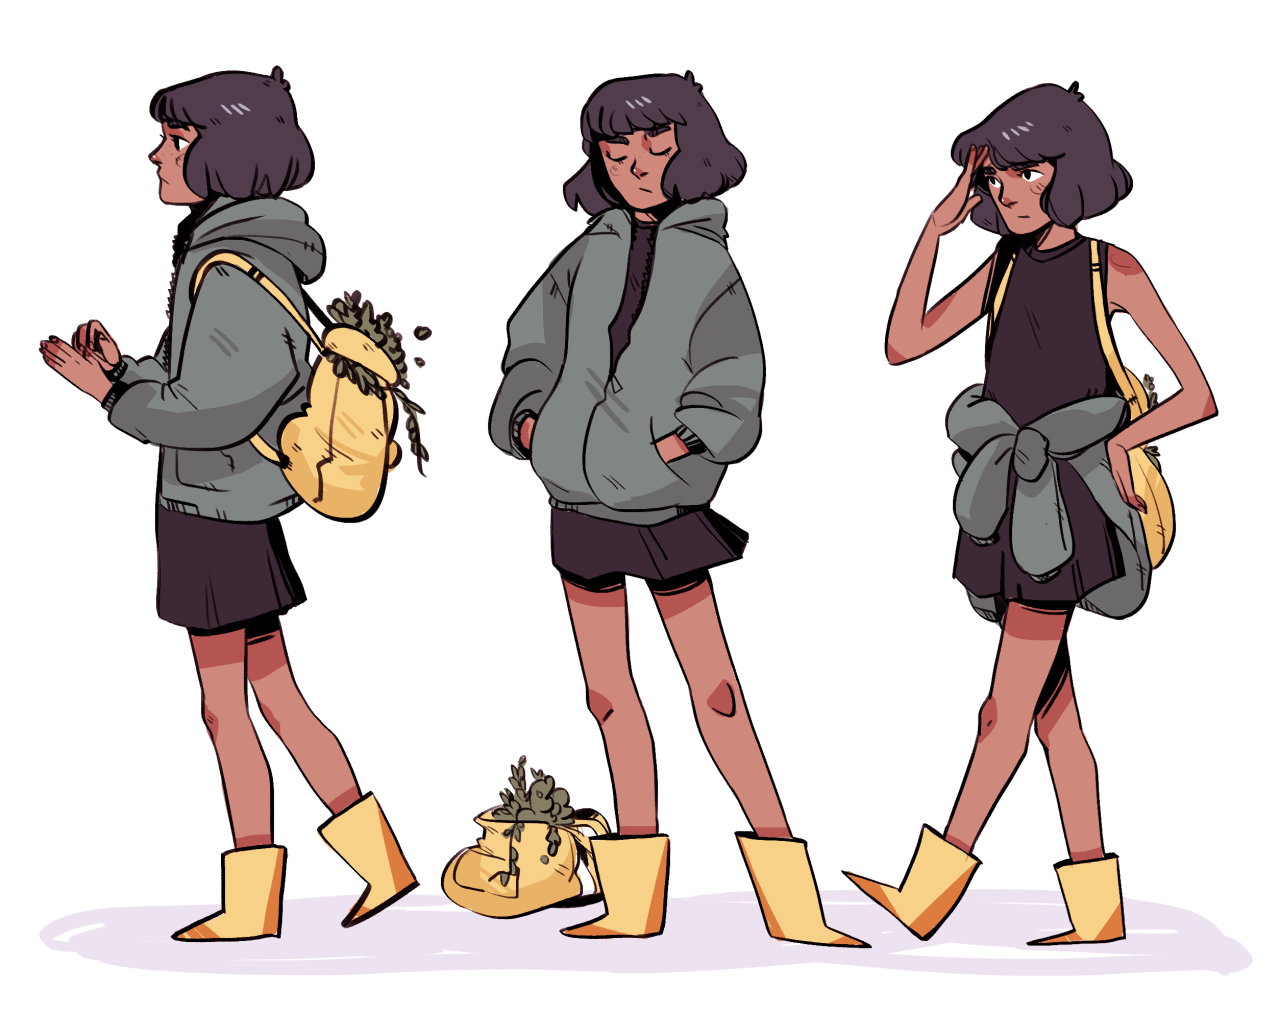 rethinking some character designs for a potential comic